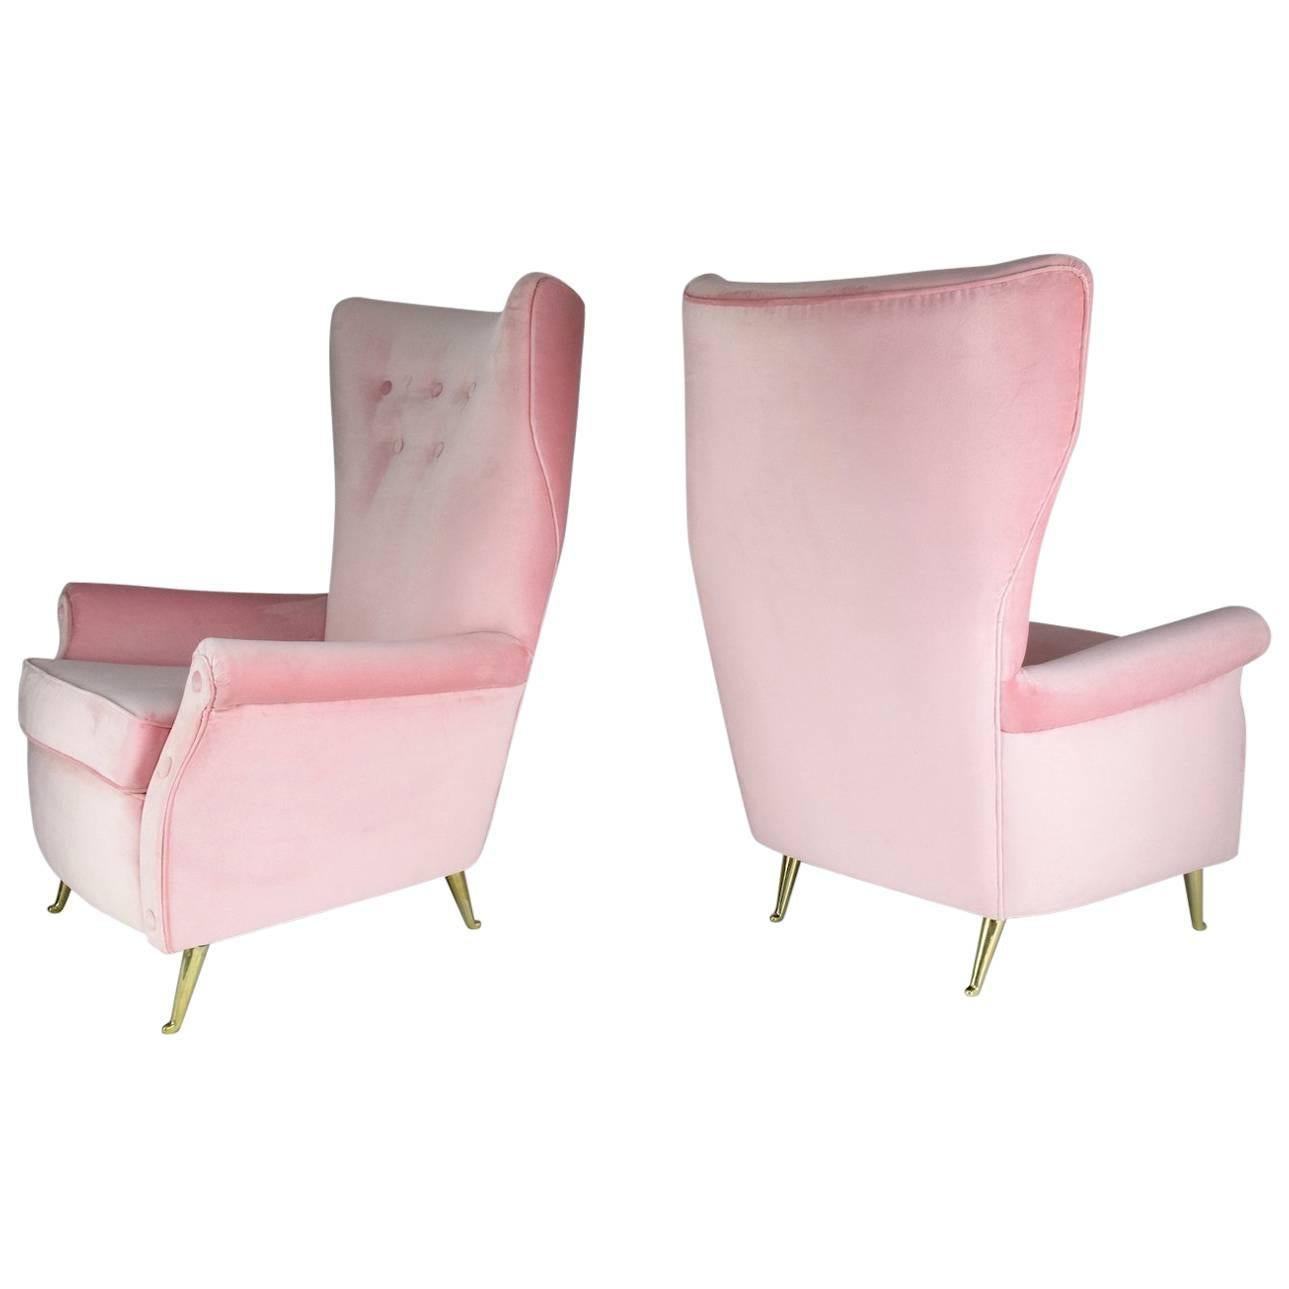 Italian Mid-Century Armchairs by ISA Bergamo, Set of Two, 1950s